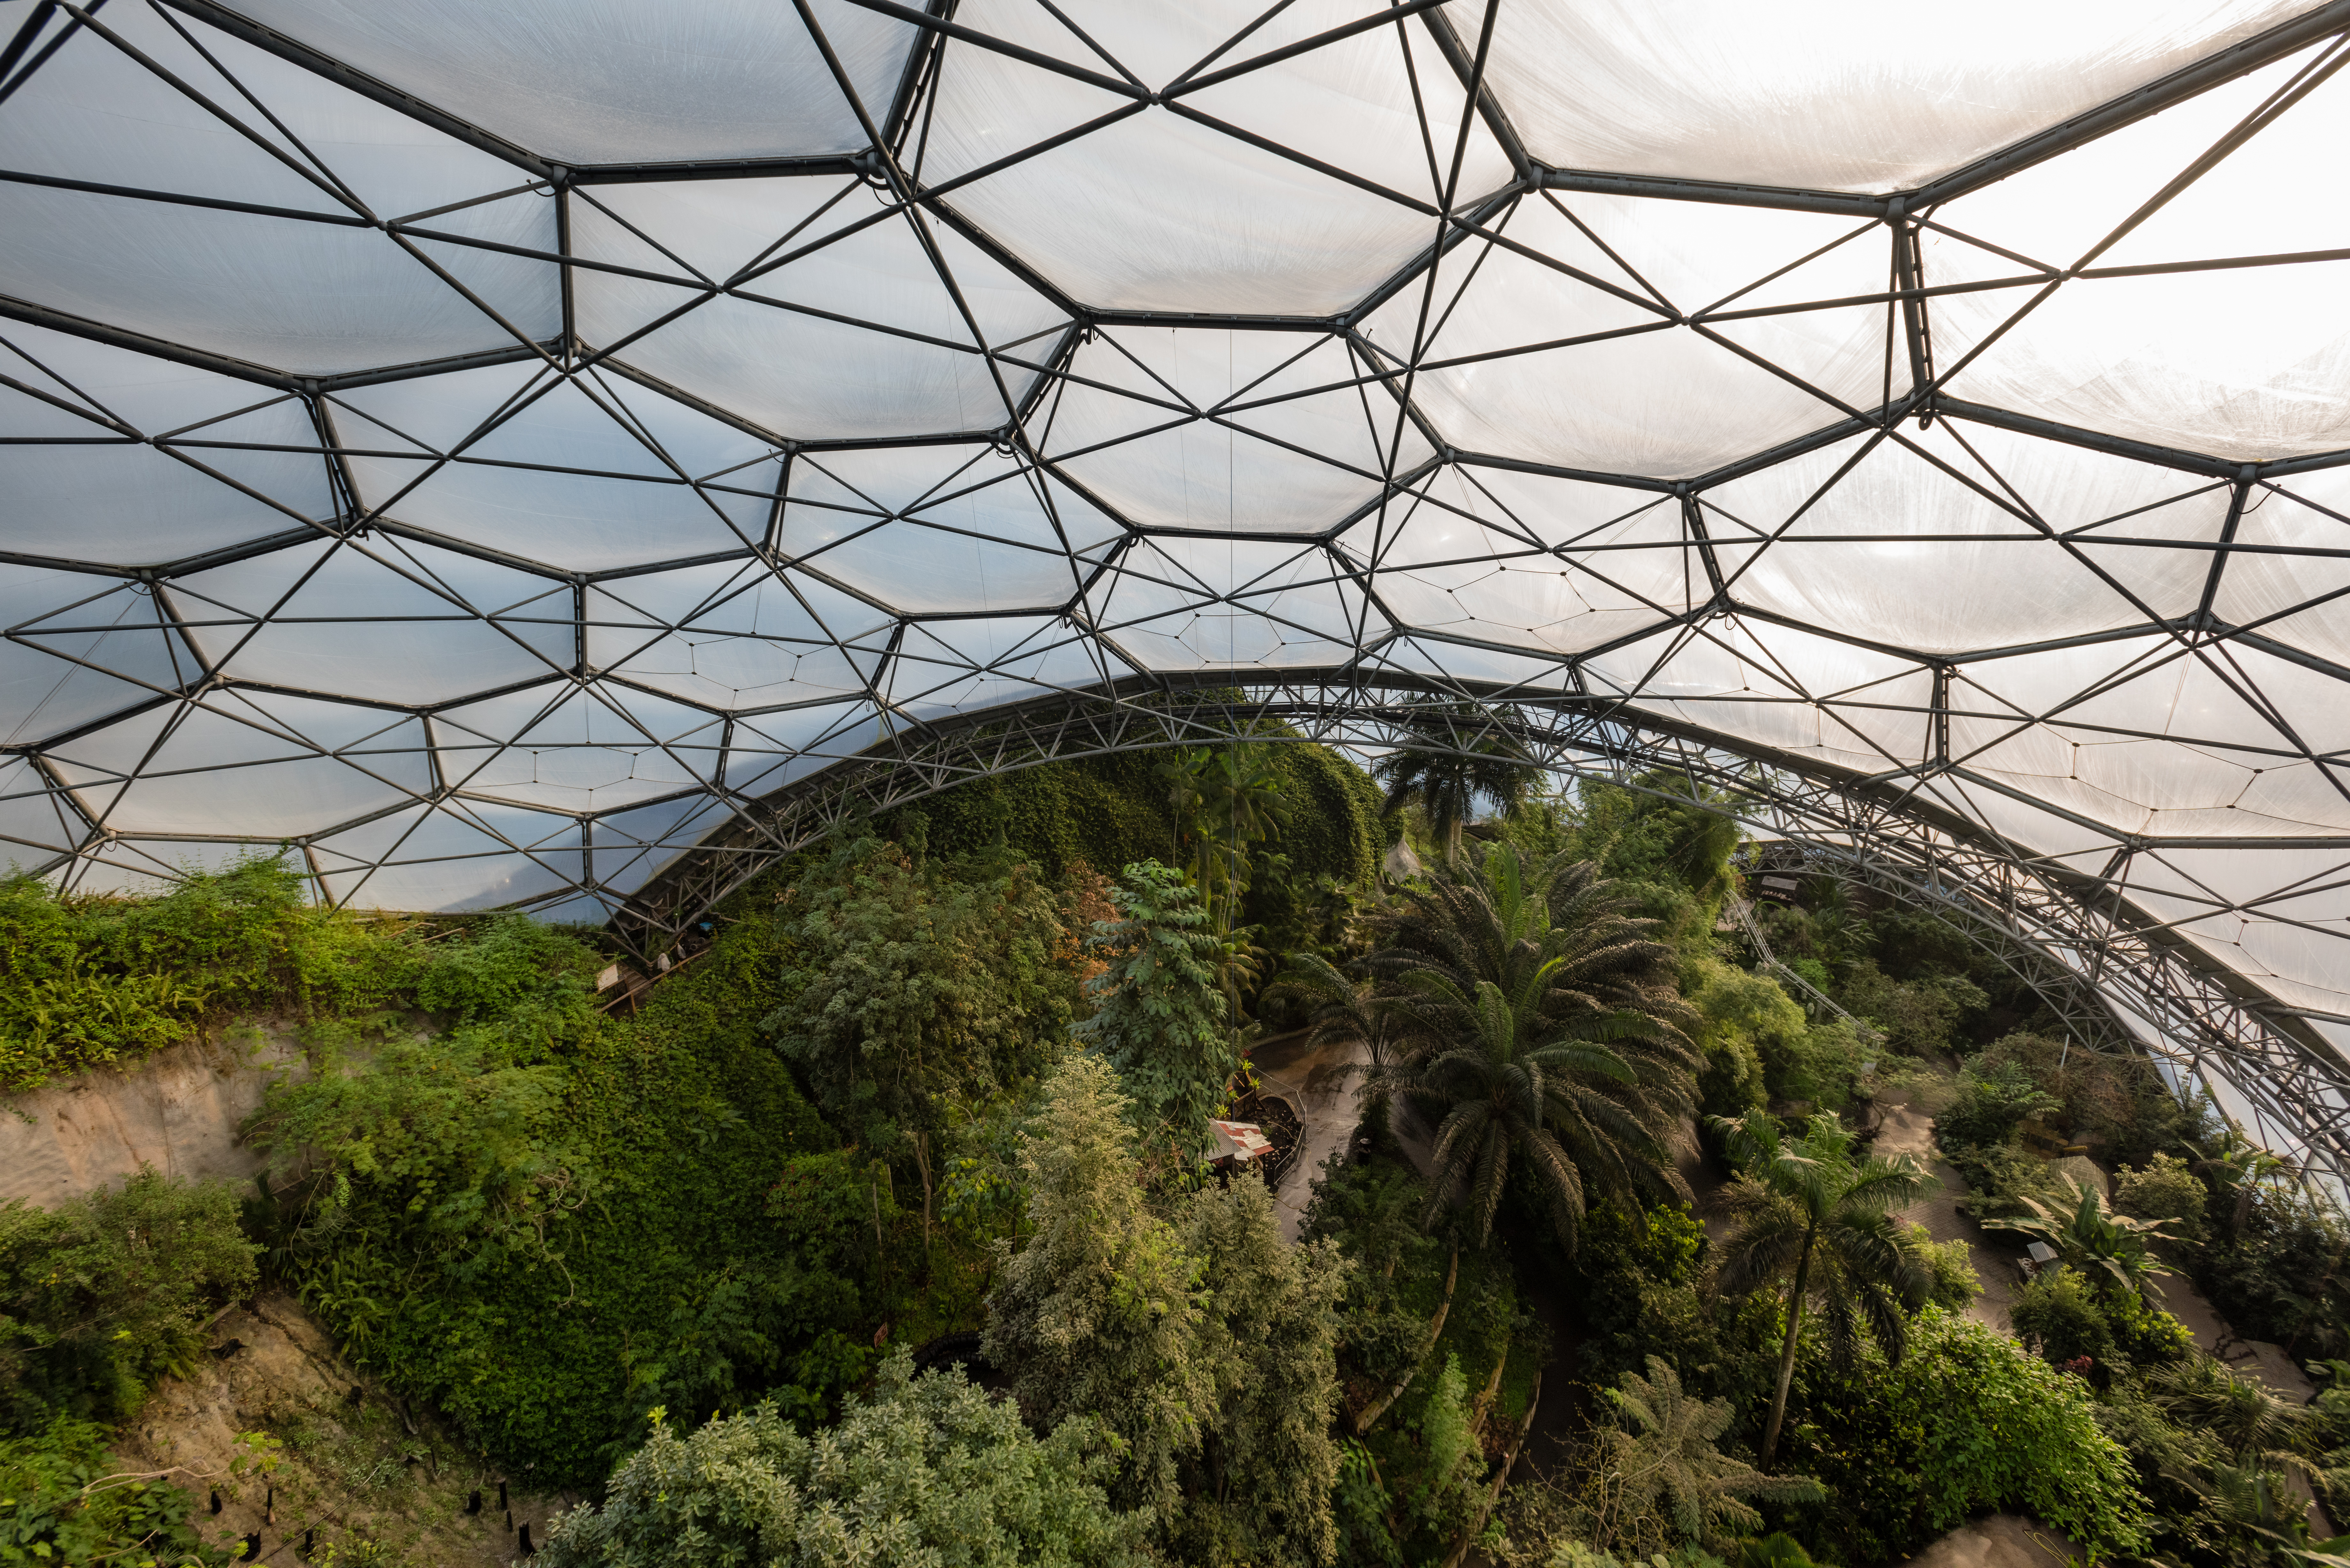 Filming VR at the Eden Project in Cornwall on the Nokia Ozo camera for Atlantic Productions